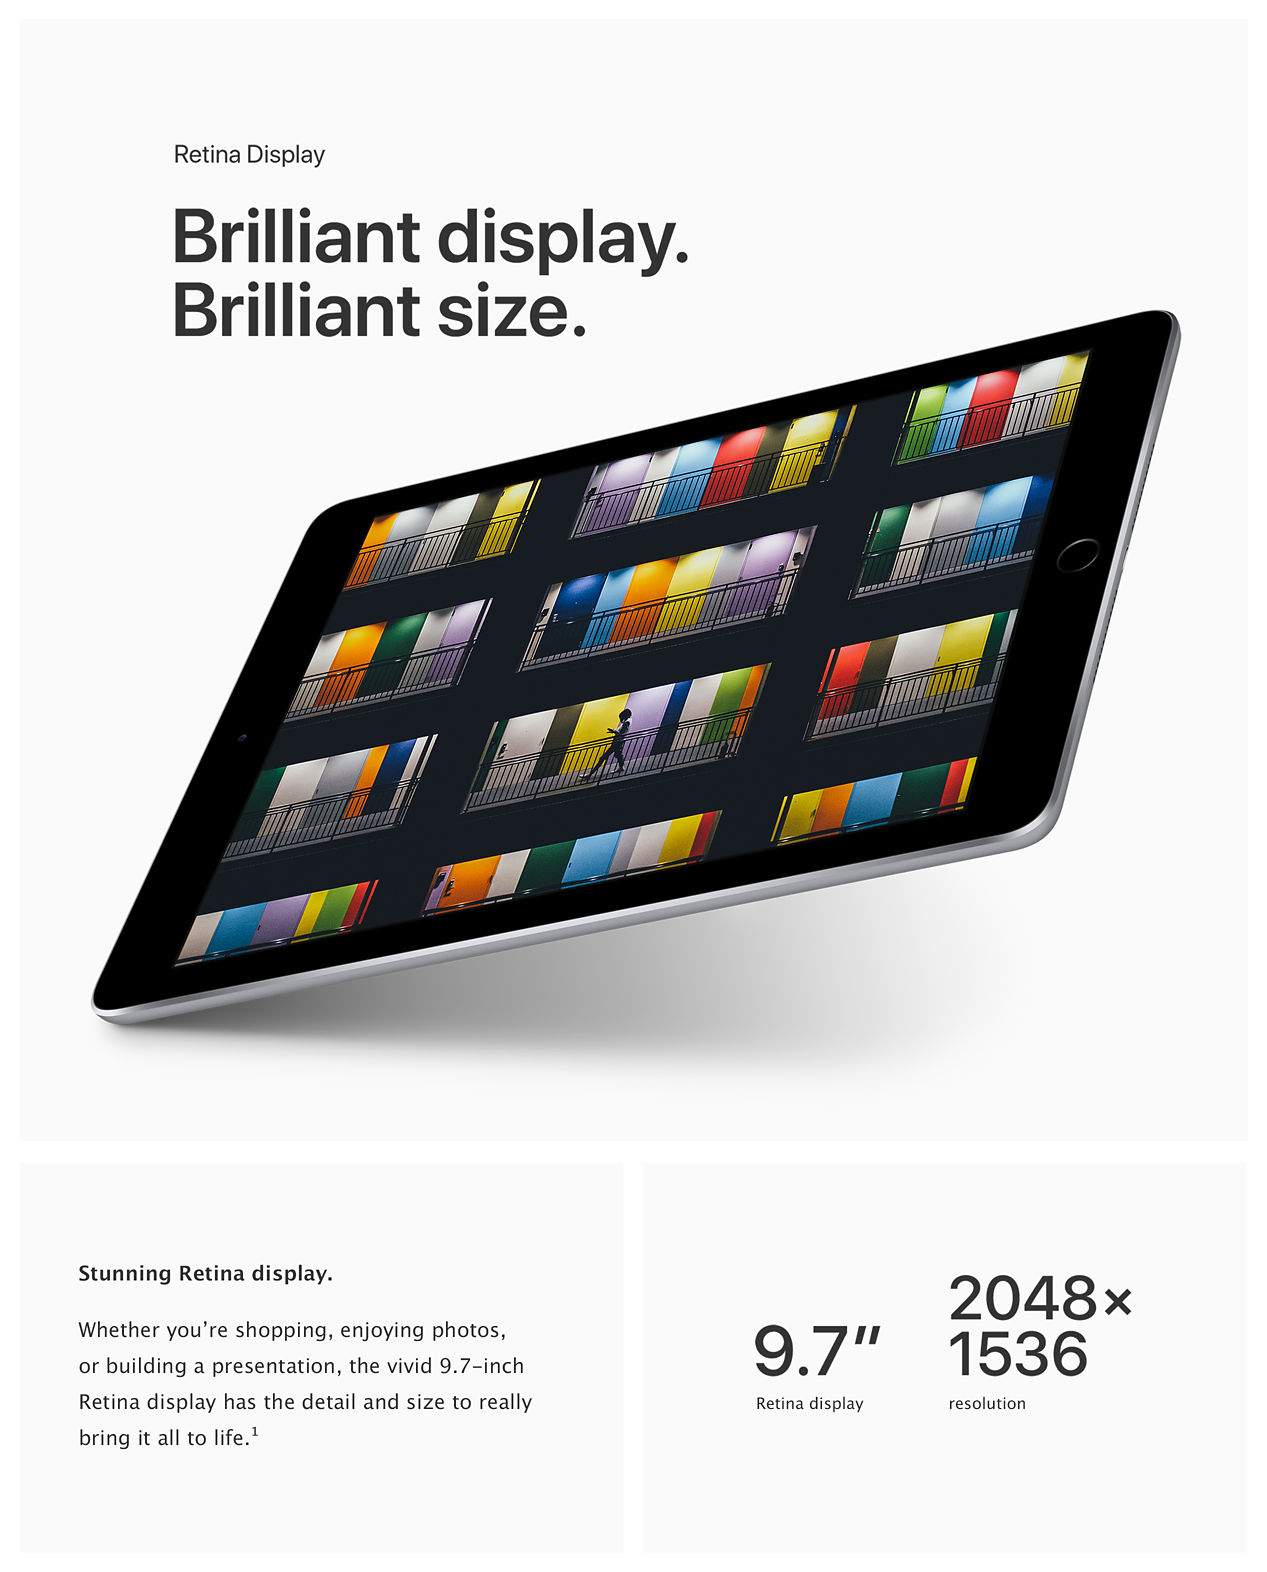 "Retina Display: Brilliant display. Brilliant size. Stunning Retina display. Whether you're shopping, enjoying photos or building a presentation, the vivid 9.7-inch Retina display has the detail and size to really bring it all to life. 9.7"" Retina display; 2048 x 1536 resolution;"